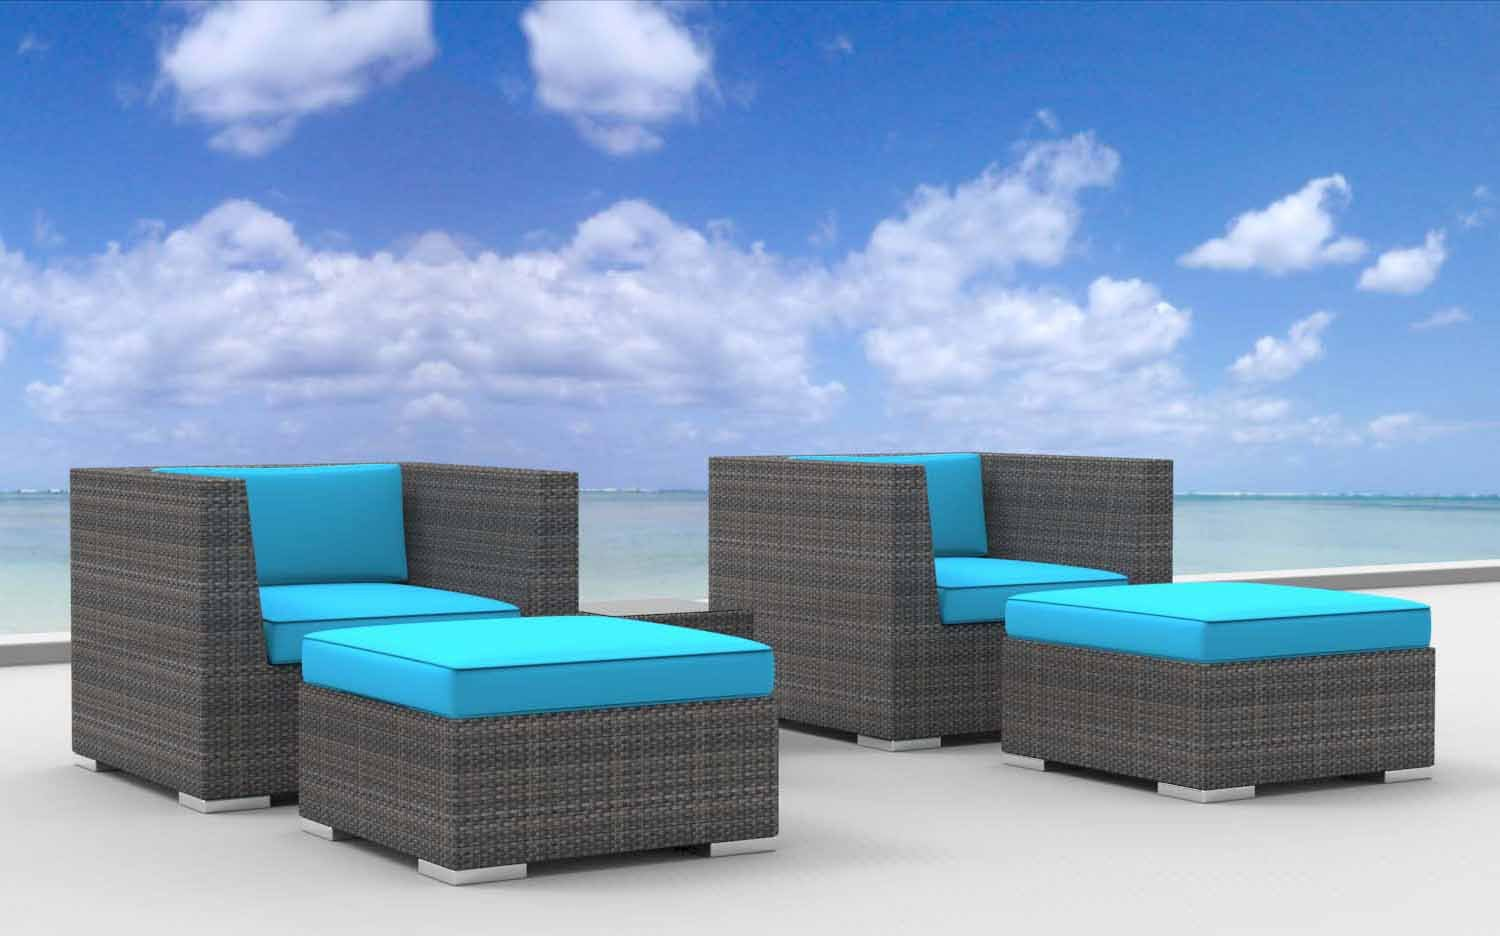 www.urbanfurnishing.net Urban Furnishing - Curacao 5pc Modern Outdoor Backyard Wicker Rattan Patio Furniture Sofa Chair Couch Set - Sea Blue at Sears.com